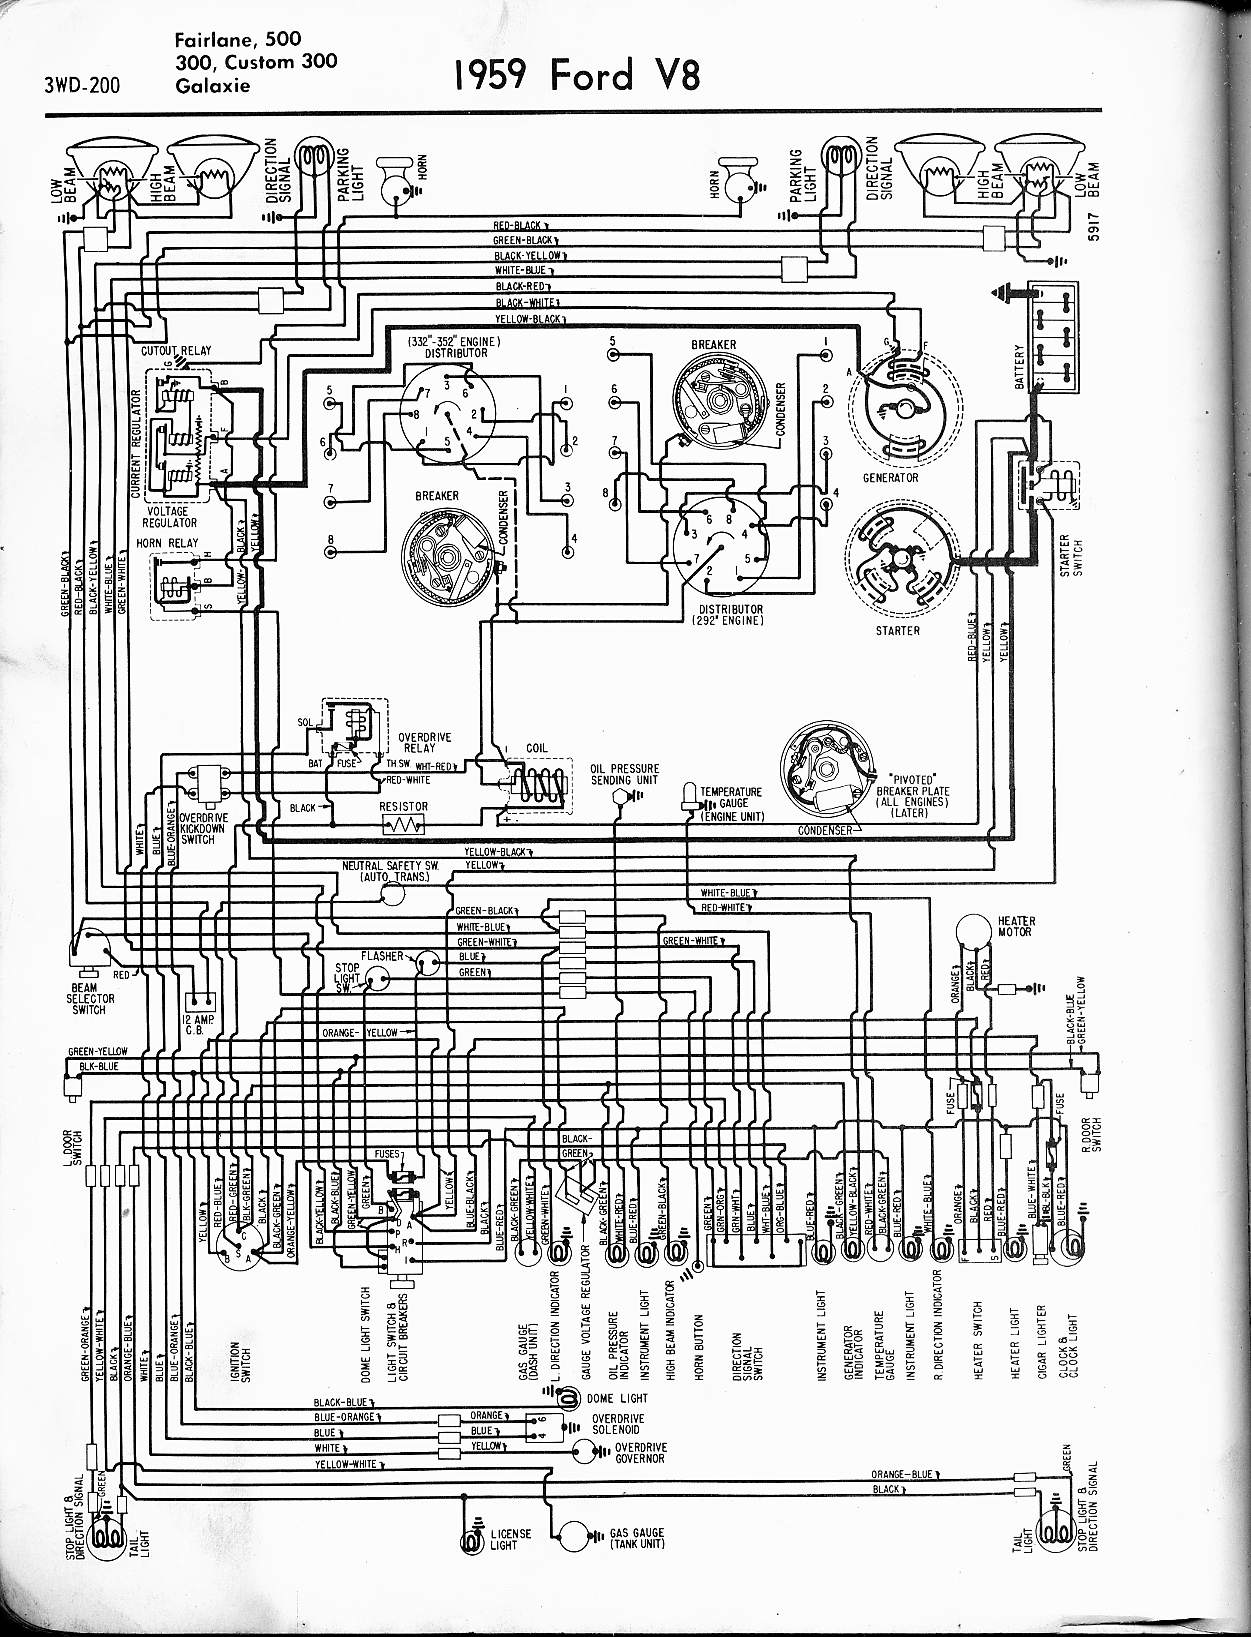 57 65 Ford Wiring Diagrams Automobile 1959 V8 Fairlane 500 300 Custom